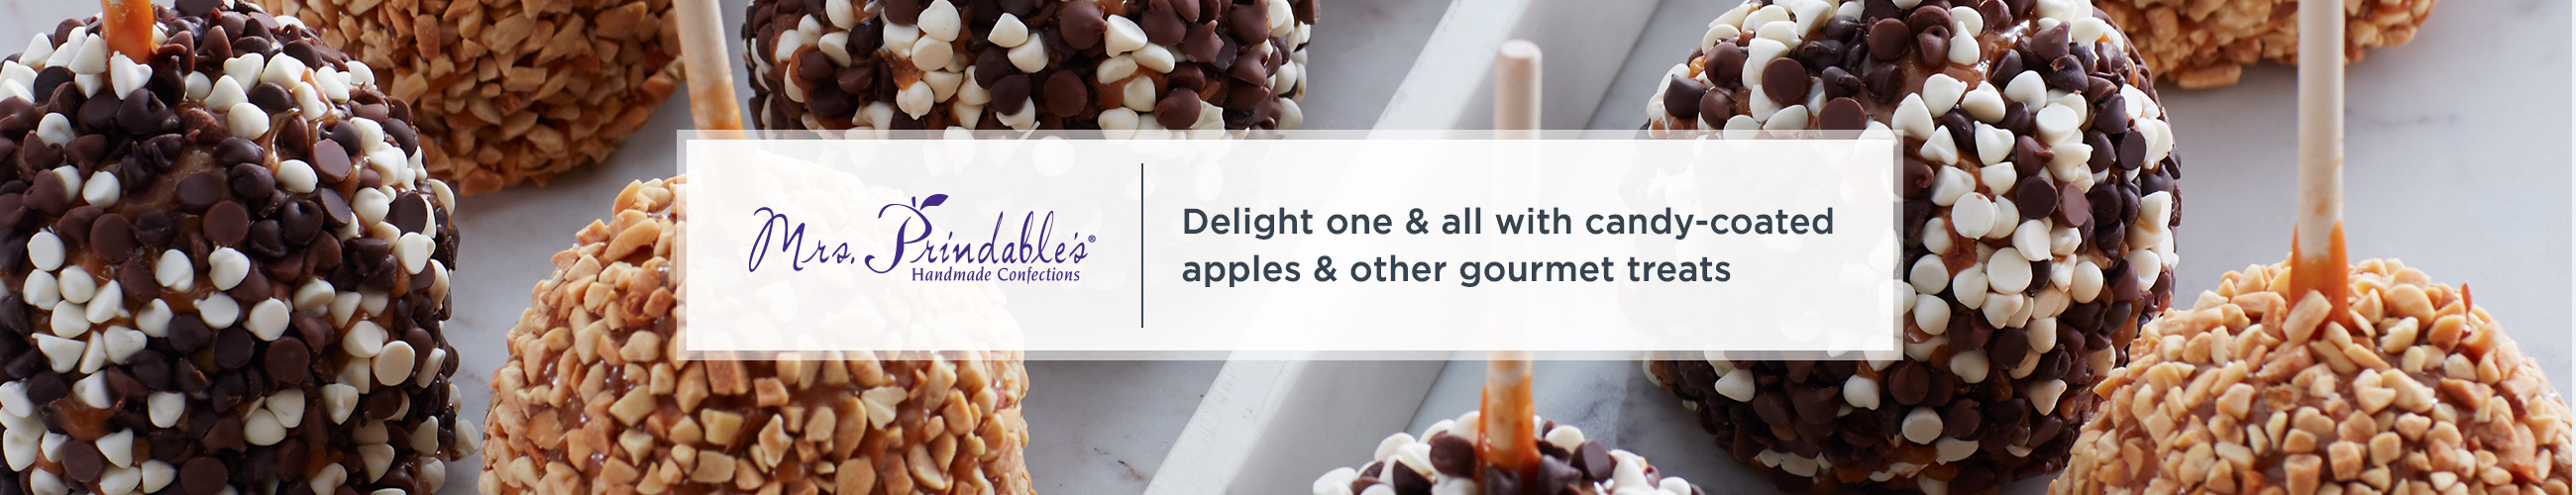 Mrs. Prindable's. Delight one & all with candy-coated apples & other gourmet treats